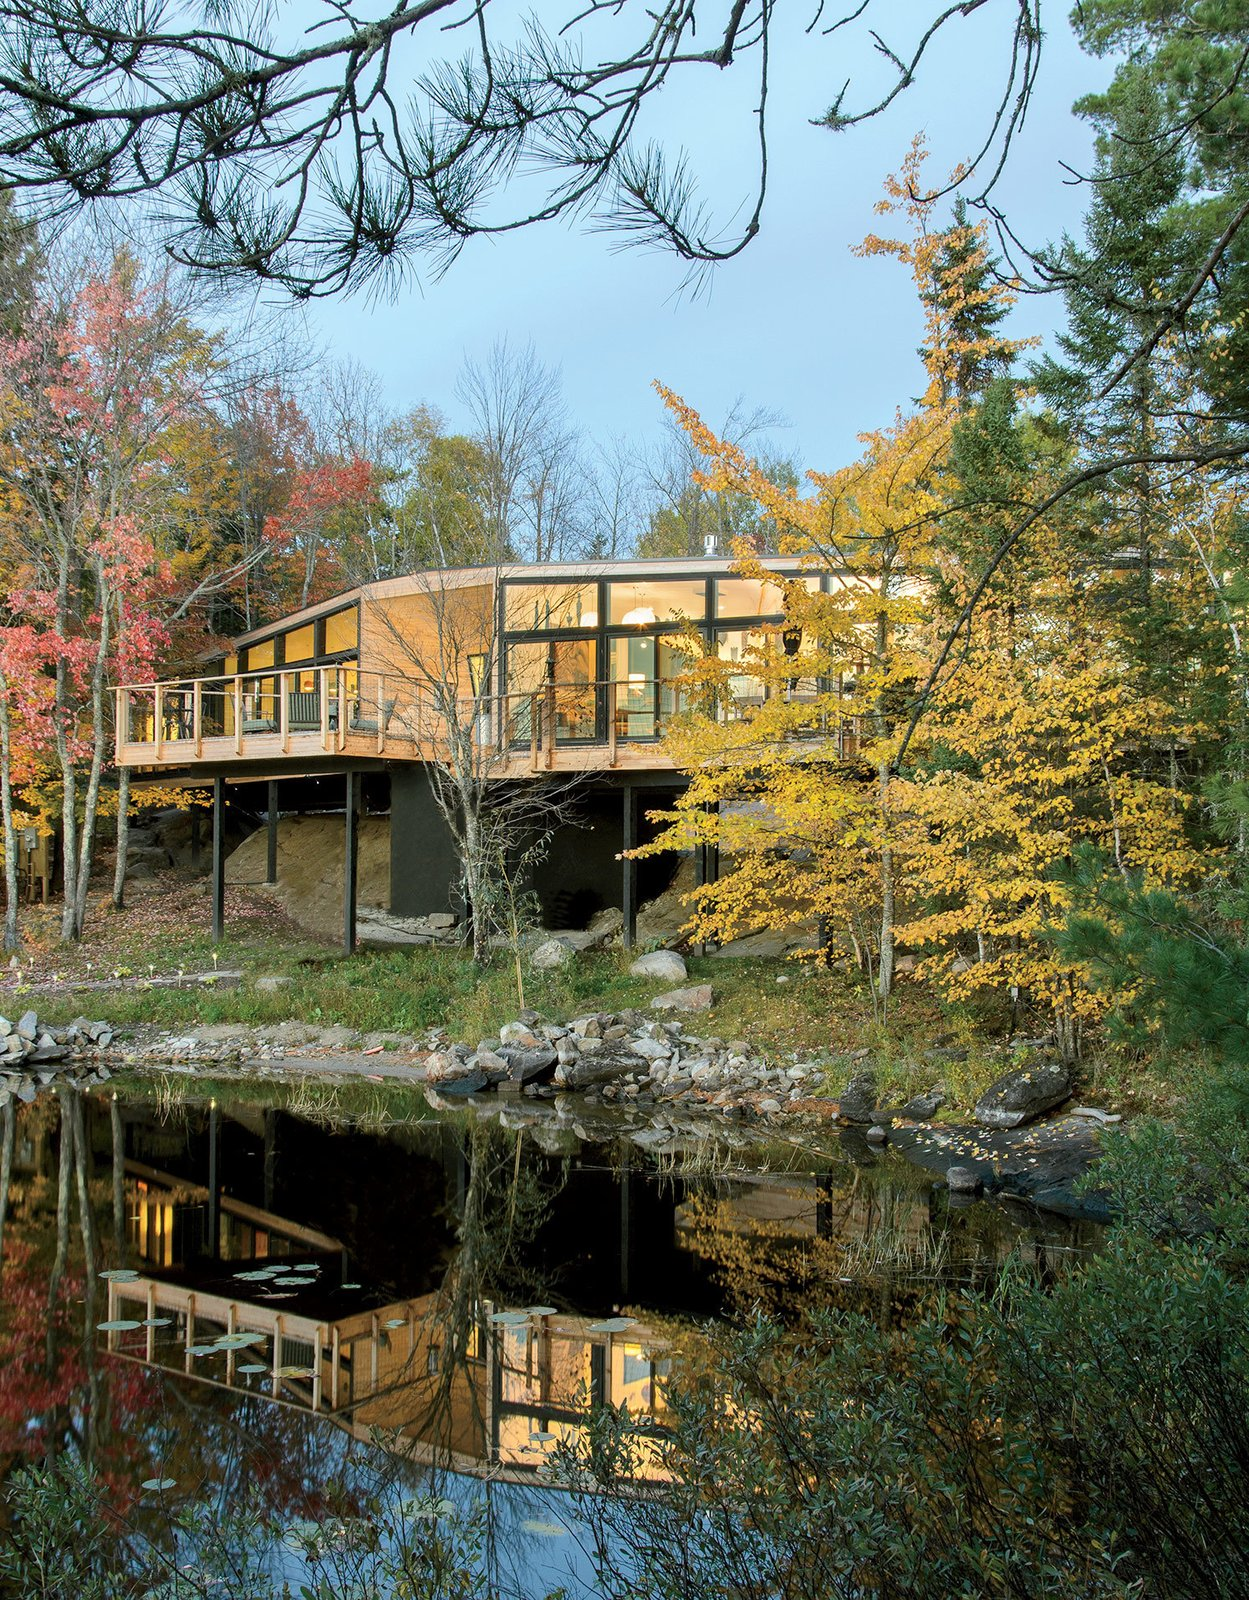 Retirees Dr. Mary Ellen Kennedy and Robert Dault tasked architect Charlie Lazor with bringing a prefabricated 2,100-square-foot home to their lakeside property, located in one of rural Ontario's unorganized territories.  Prefab by Dan Perjar from This Isolated Prefab Is One with the Wild